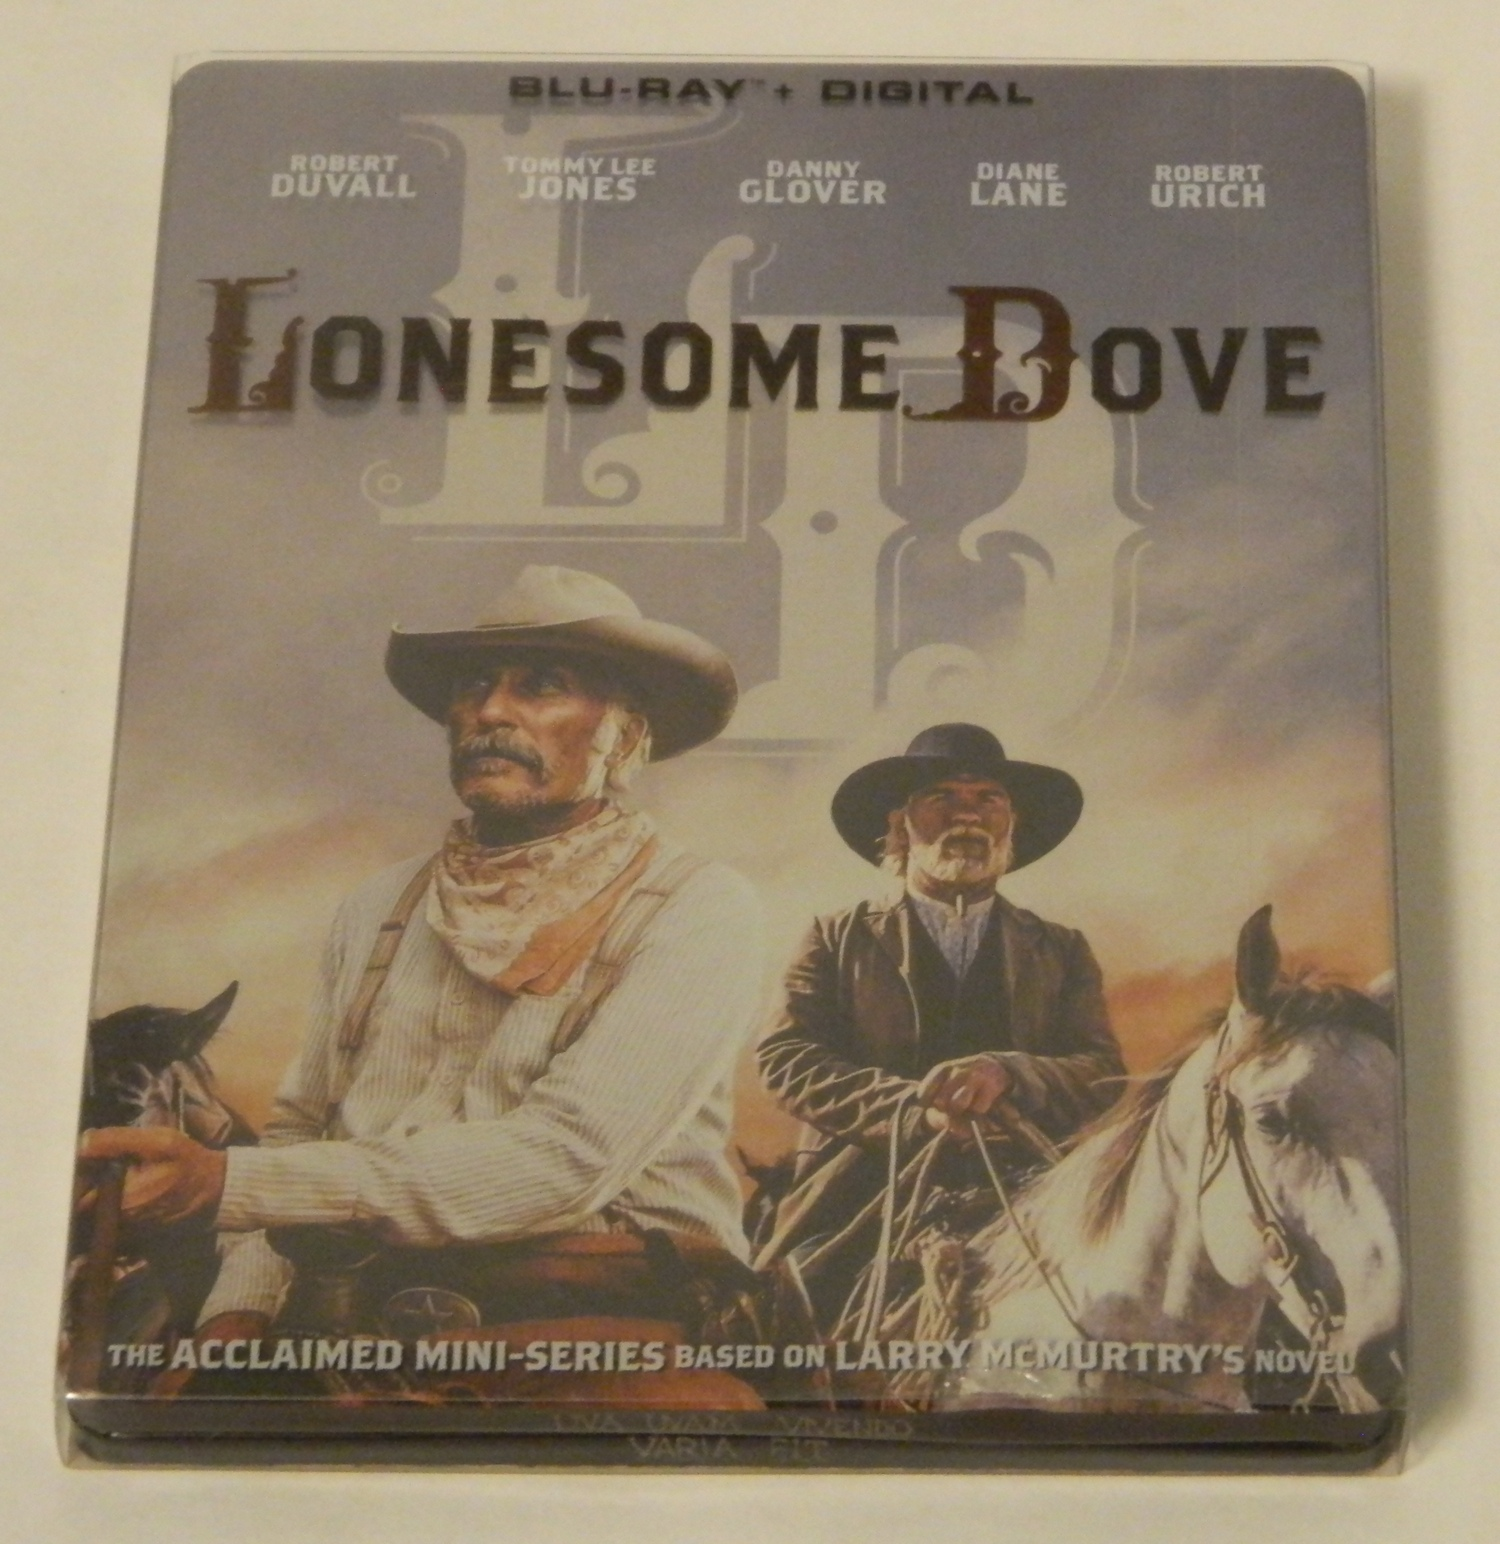 Lonesome Dove Steelbook Blu-ray